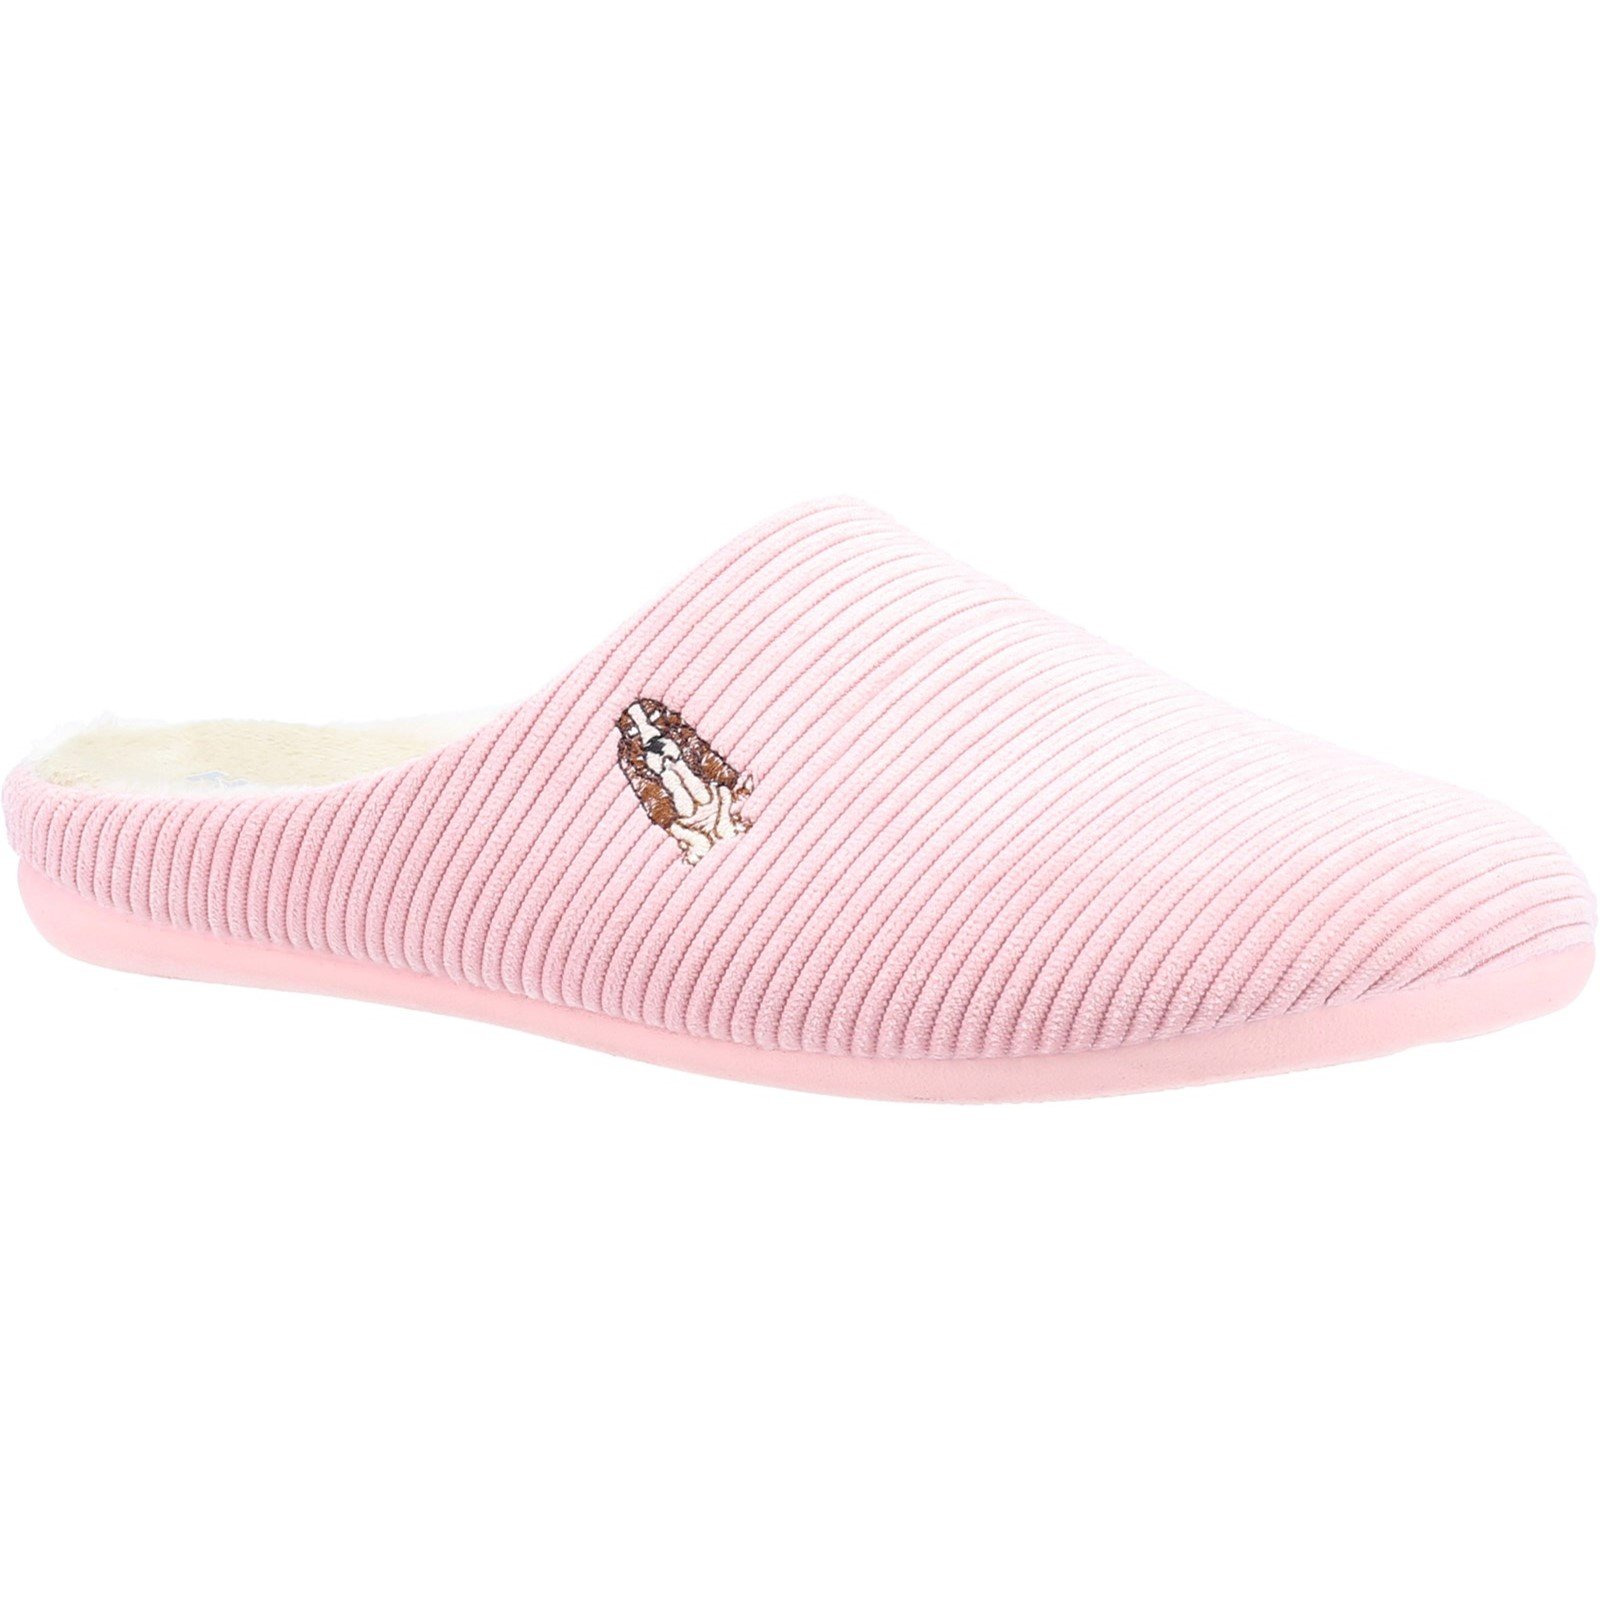 Hush Puppies Women's Raelyn Slipper Various Colours 32854 - Pink 4